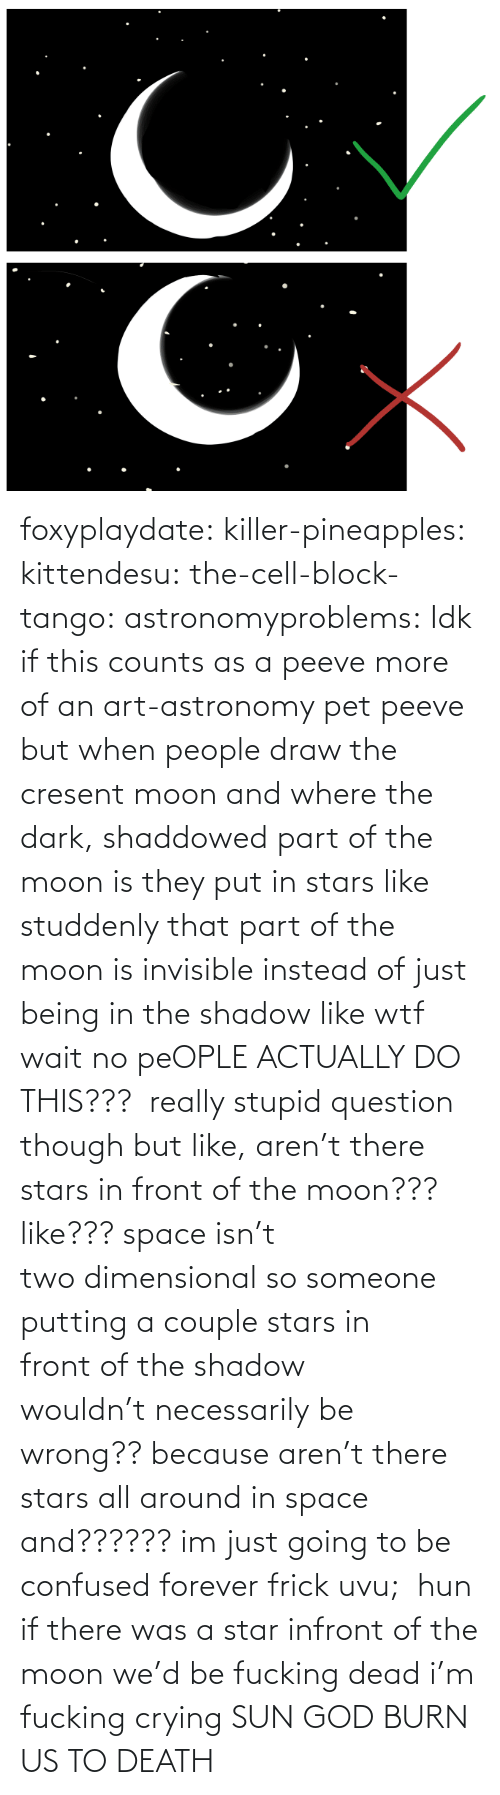 Confused, Crying, and Frick: foxyplaydate: killer-pineapples:  kittendesu:  the-cell-block-tango:  astronomyproblems:  Idk if this counts as a peeve more of an art-astronomy pet peeve but when people draw the cresent moon and where the dark, shaddowed part of the moon is they put in stars like studdenly that part of the moon is invisible instead of just being in the shadow like wtf  wait no peOPLE ACTUALLY DO THIS???   really stupid question though but like, aren't there stars in front of the moon??? like??? space isn't two dimensional so someone putting a couple stars in front of the shadow wouldn't necessarily be wrong?? because aren't there stars all around in space and?????? im just going to be confused forever frick uvu;   hun if there was a star infront of the moon we'd be fucking dead  i'm fucking crying    SUN GOD BURN US TO DEATH